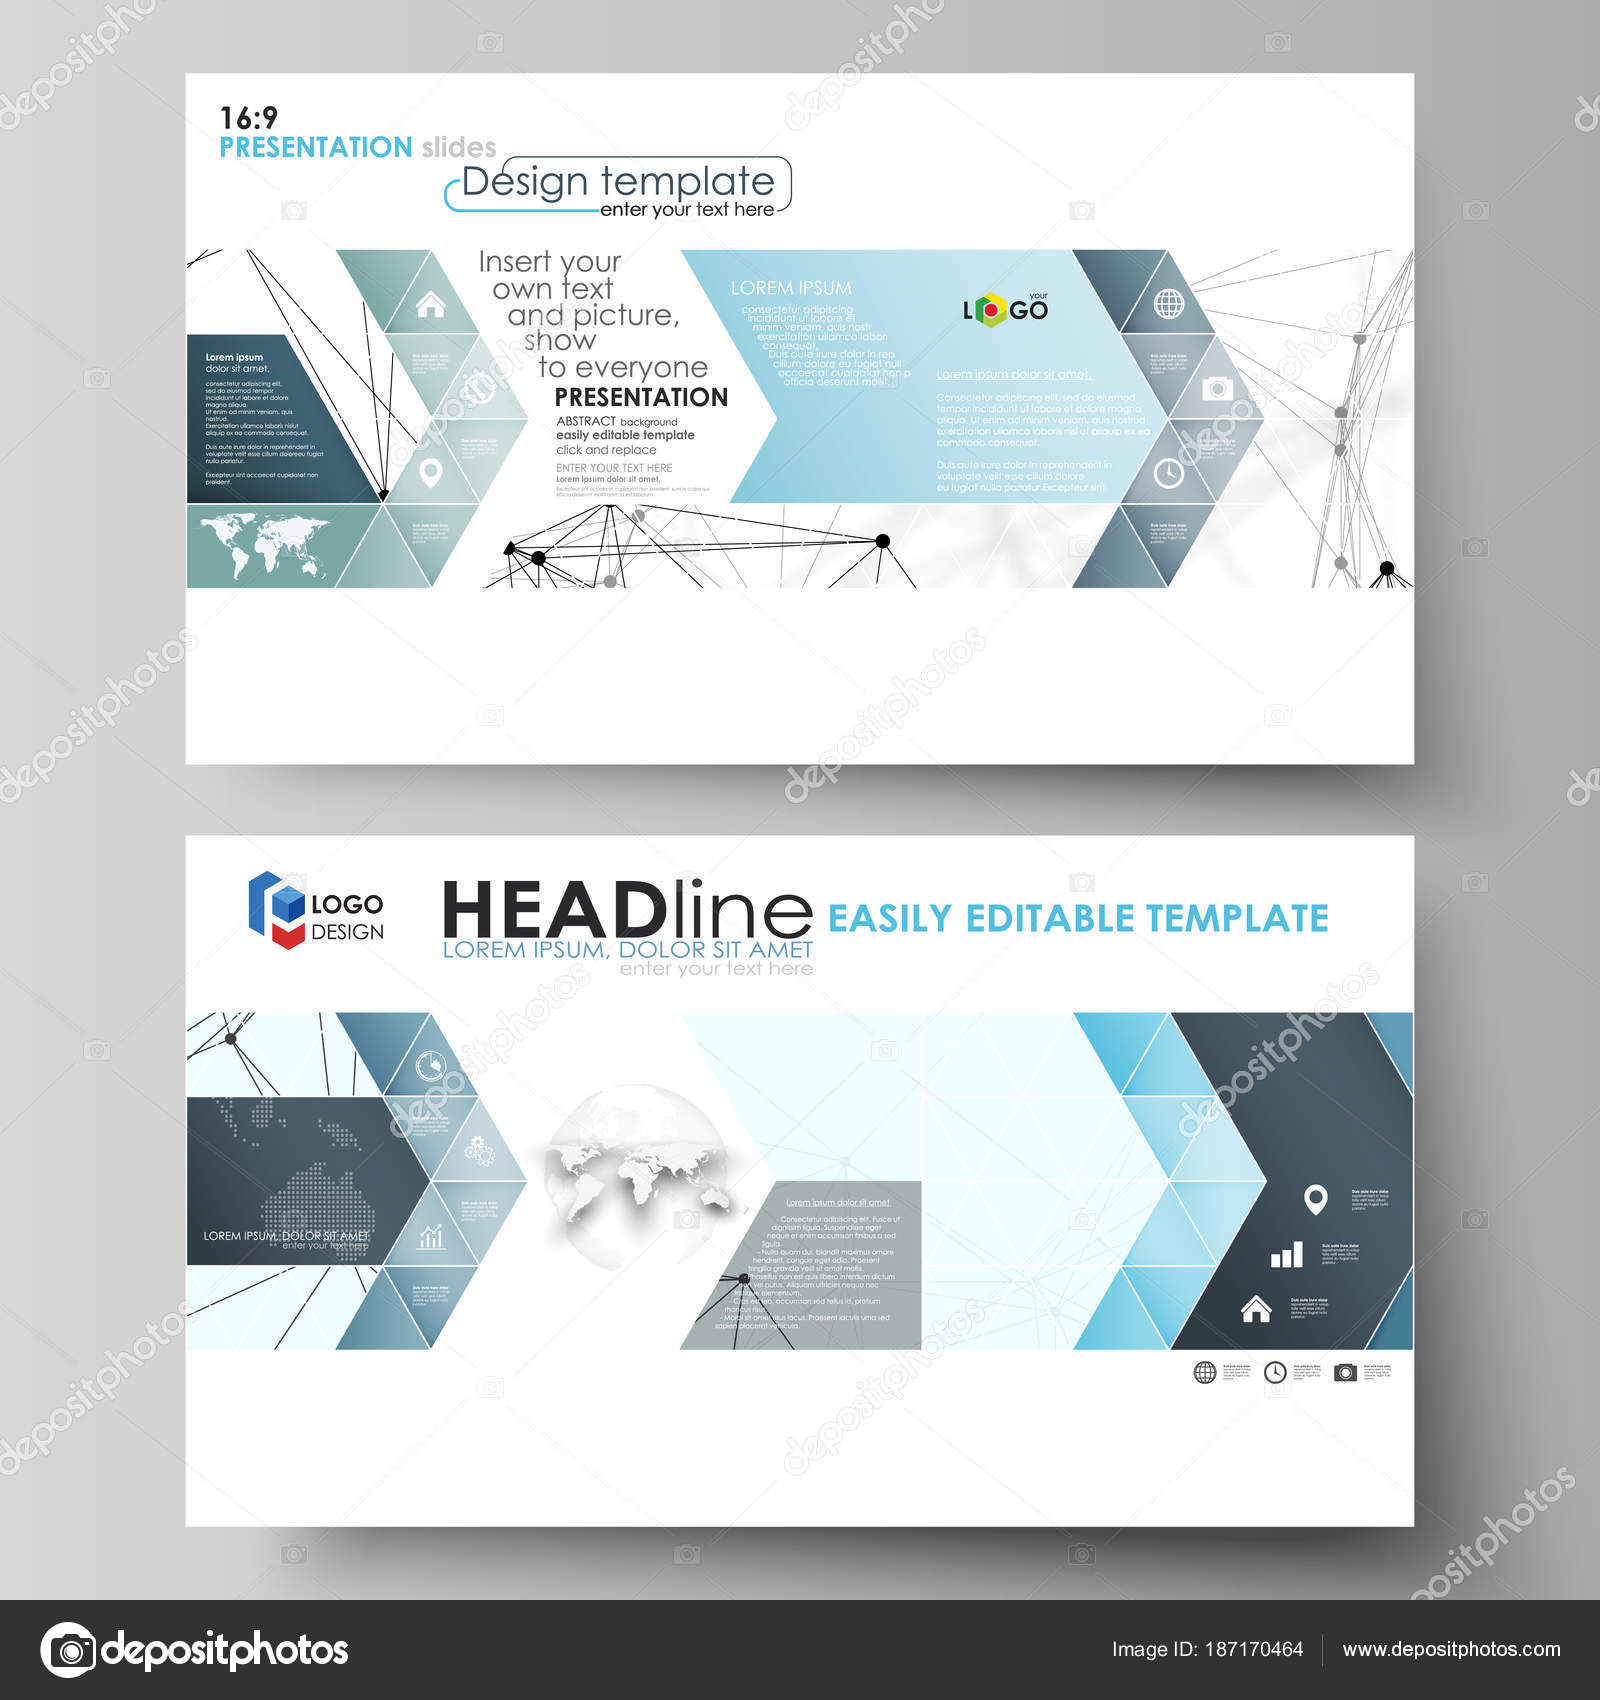 Business templates in HD format for presentation slides Abstract